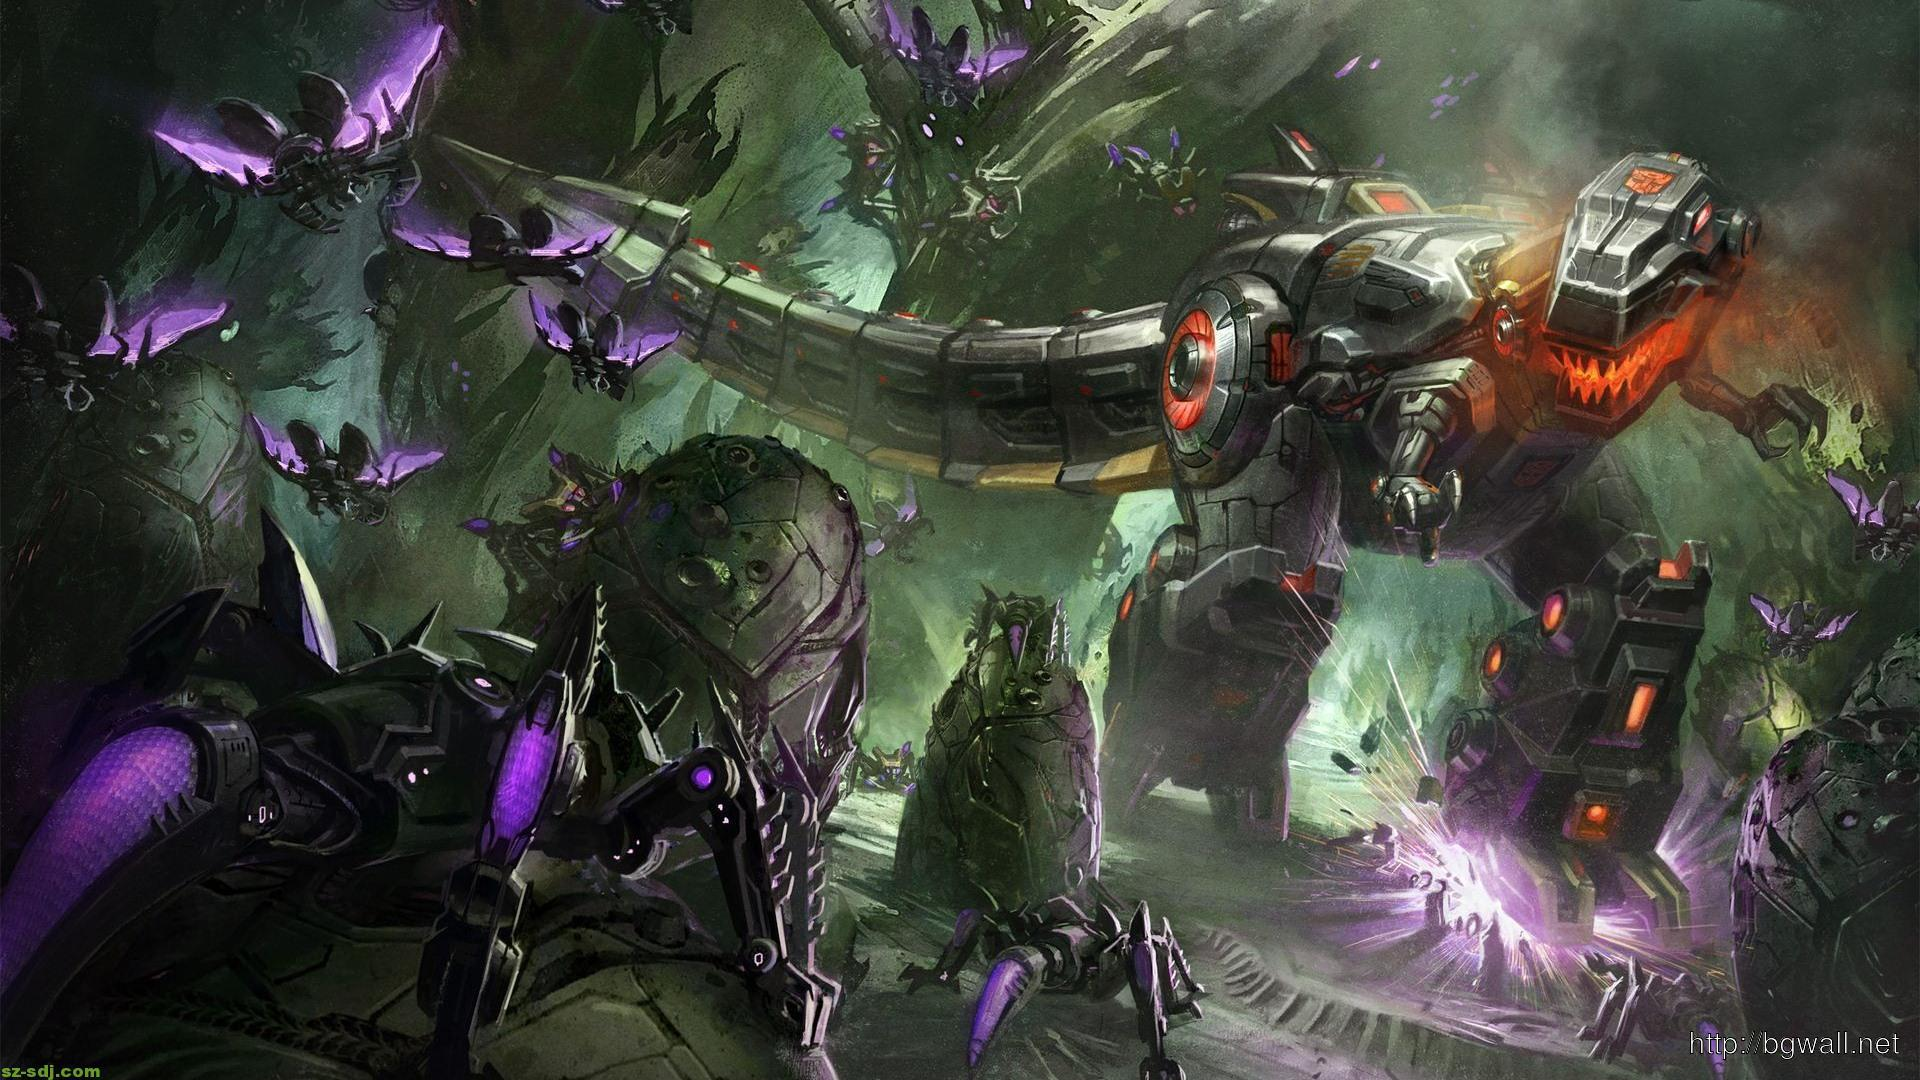 transformers wallpaper for pc free download